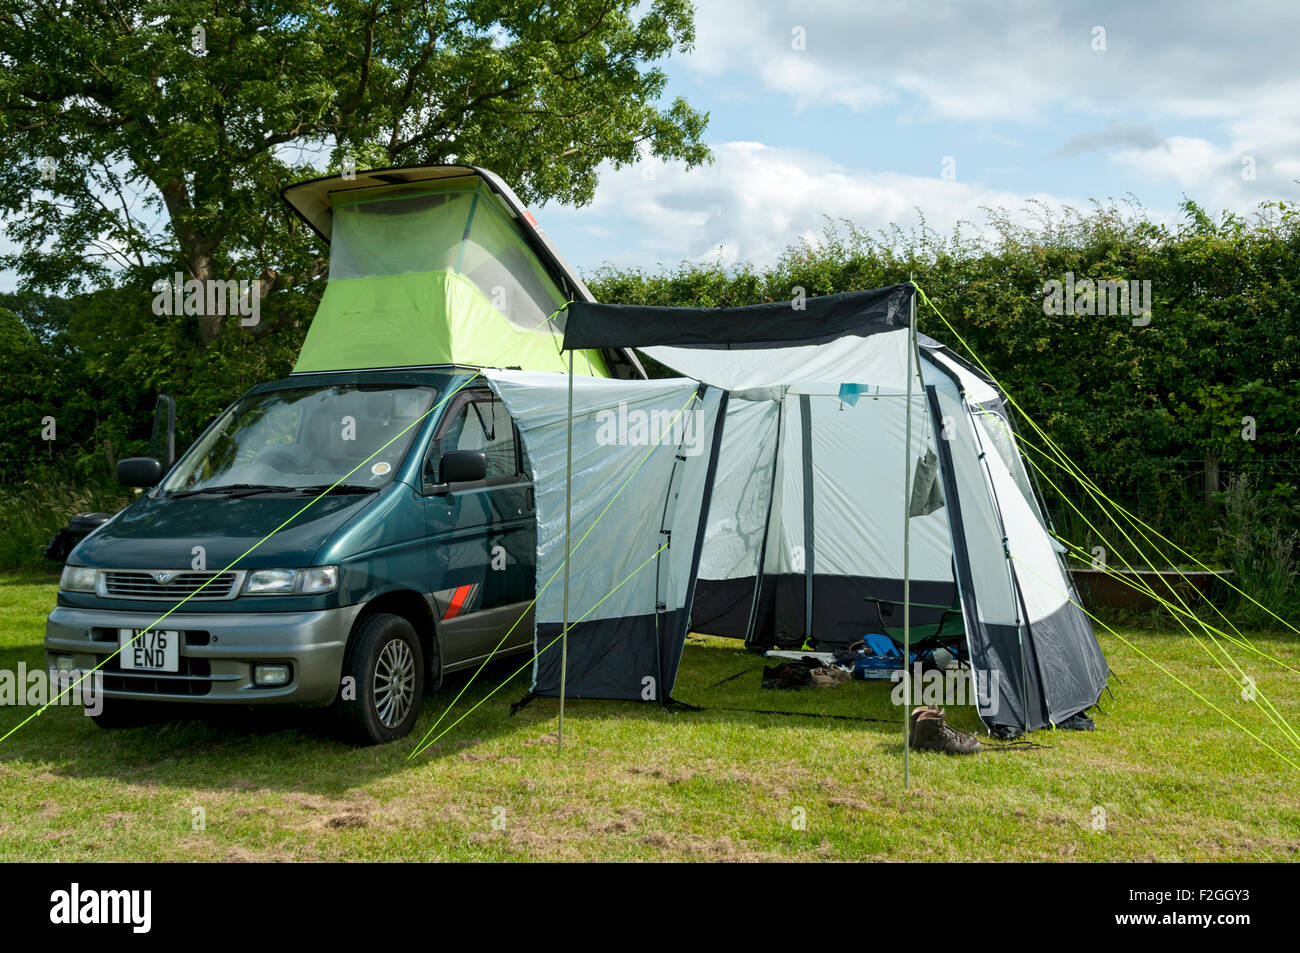 A Mazda Bongo campervan with side awning on a camp site near Sneaton